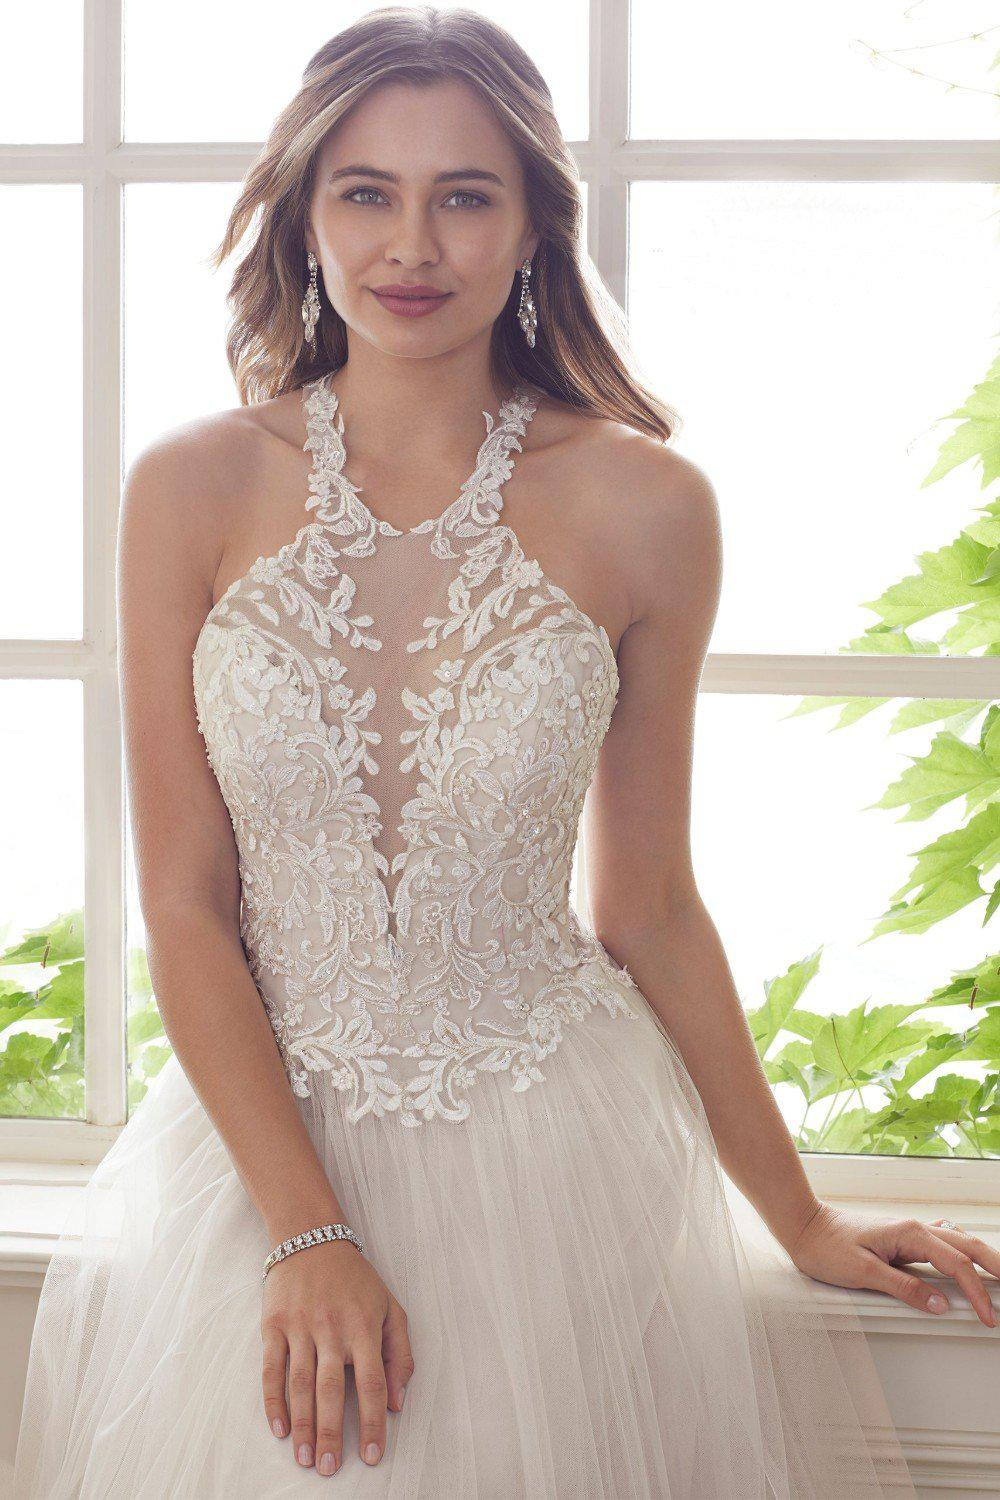 A-Line Halter Neck with Lace and Tulle Gown - Mr. & Mrs. Tomorrow